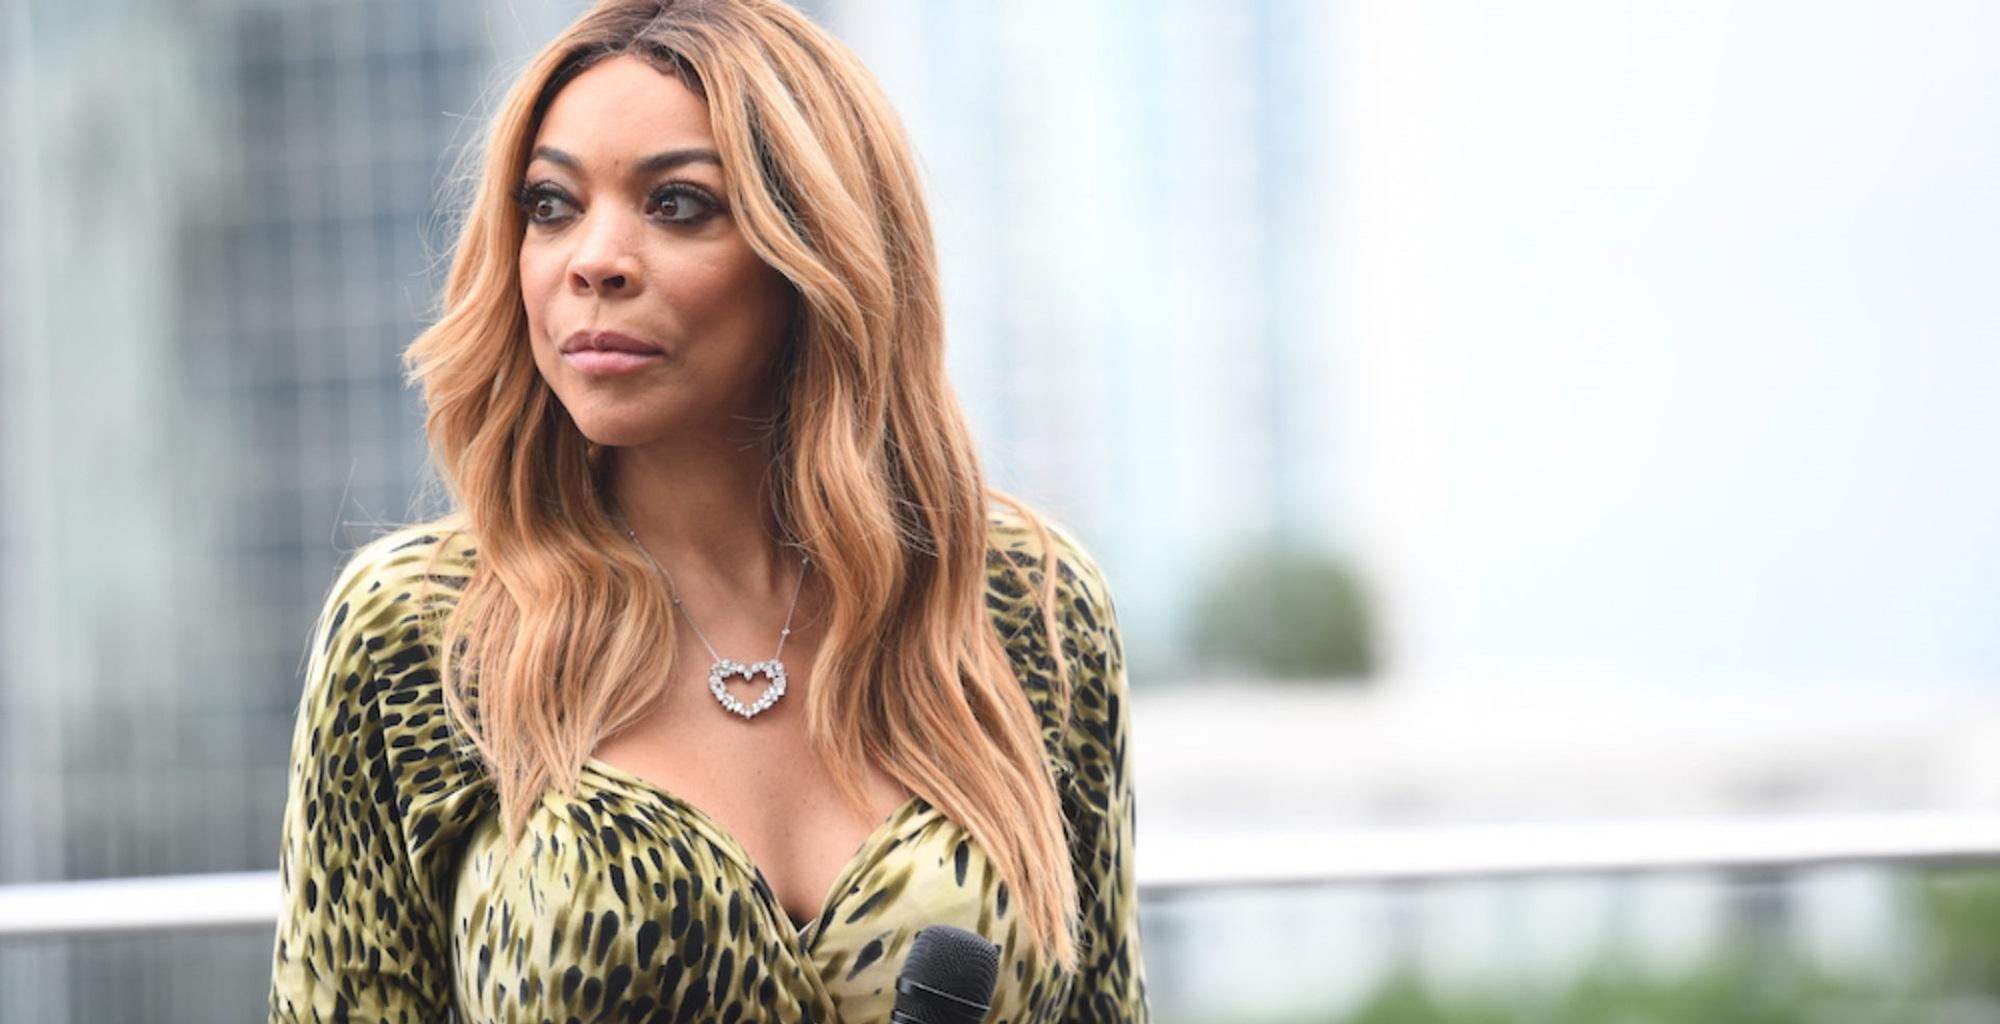 Wendy Williams Makes A Big Move Confirming That Her Romance With New Boyfriend Is Getting More Serious After Split From Kevin Hunter